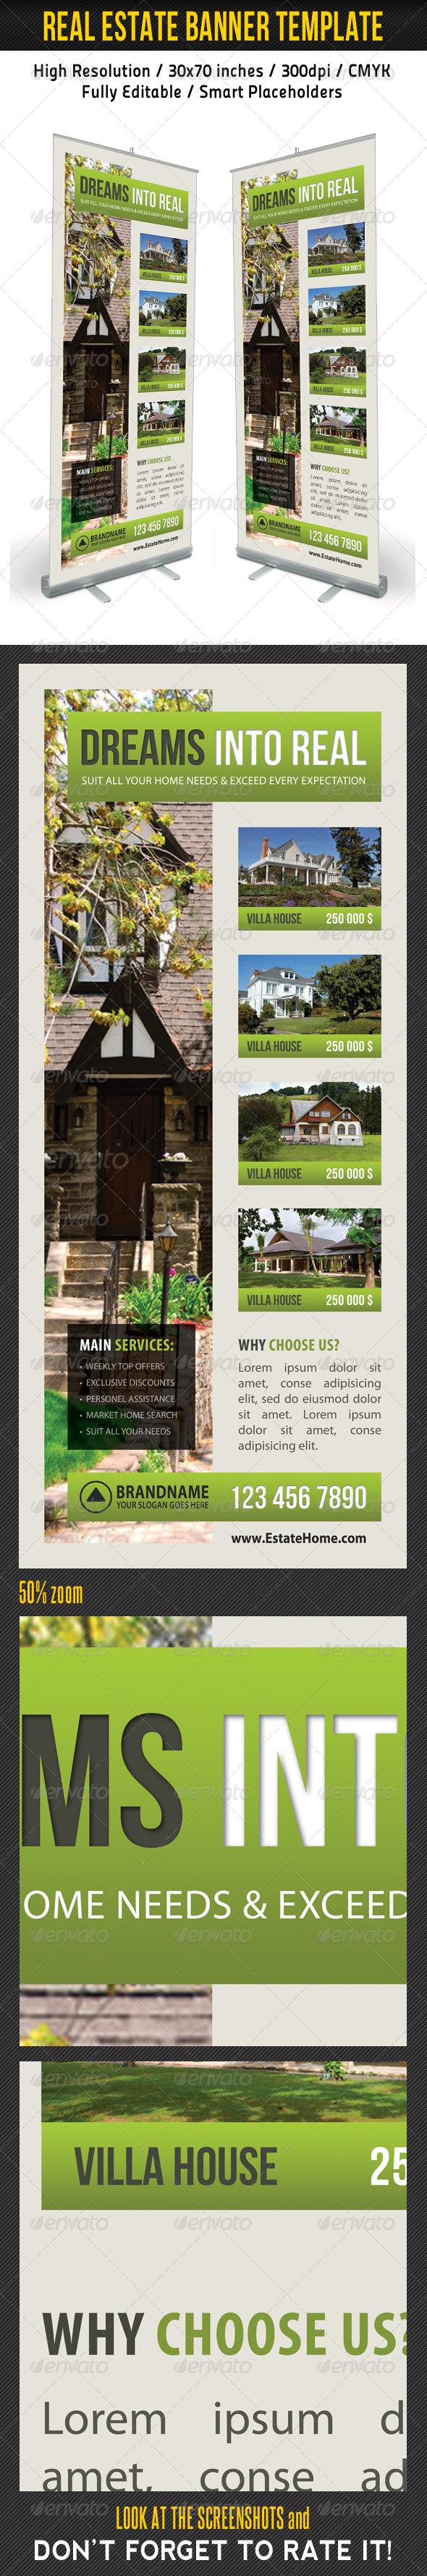 GraphicRiver Real Estate Banner Template 12 7337517